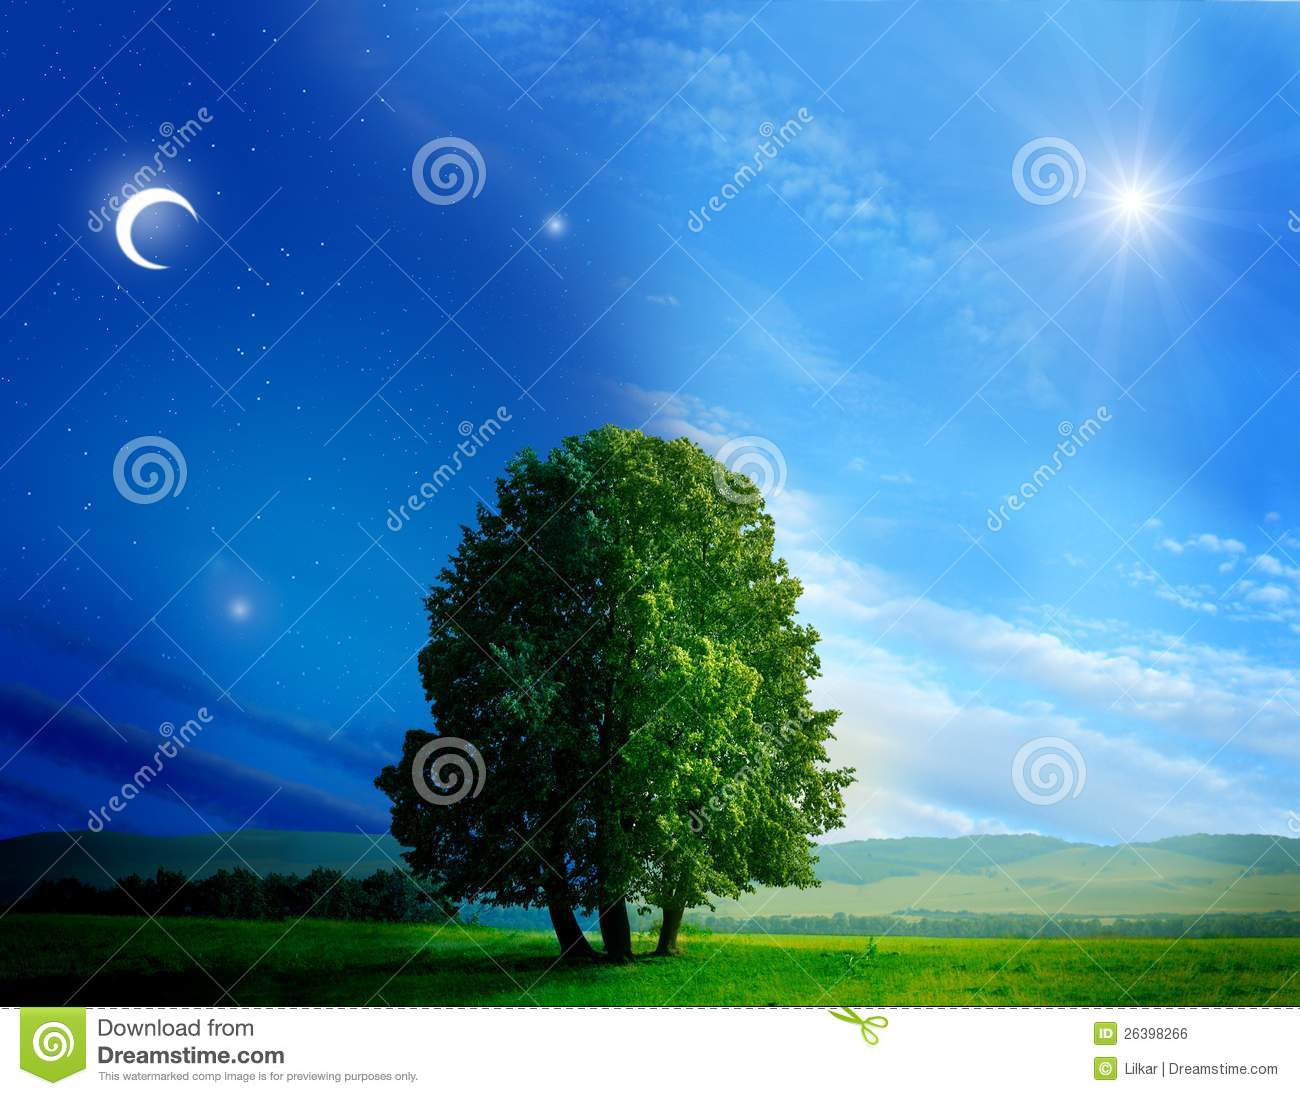 Day And Night Tree Royalty Free Stock Image  Image: 26398266